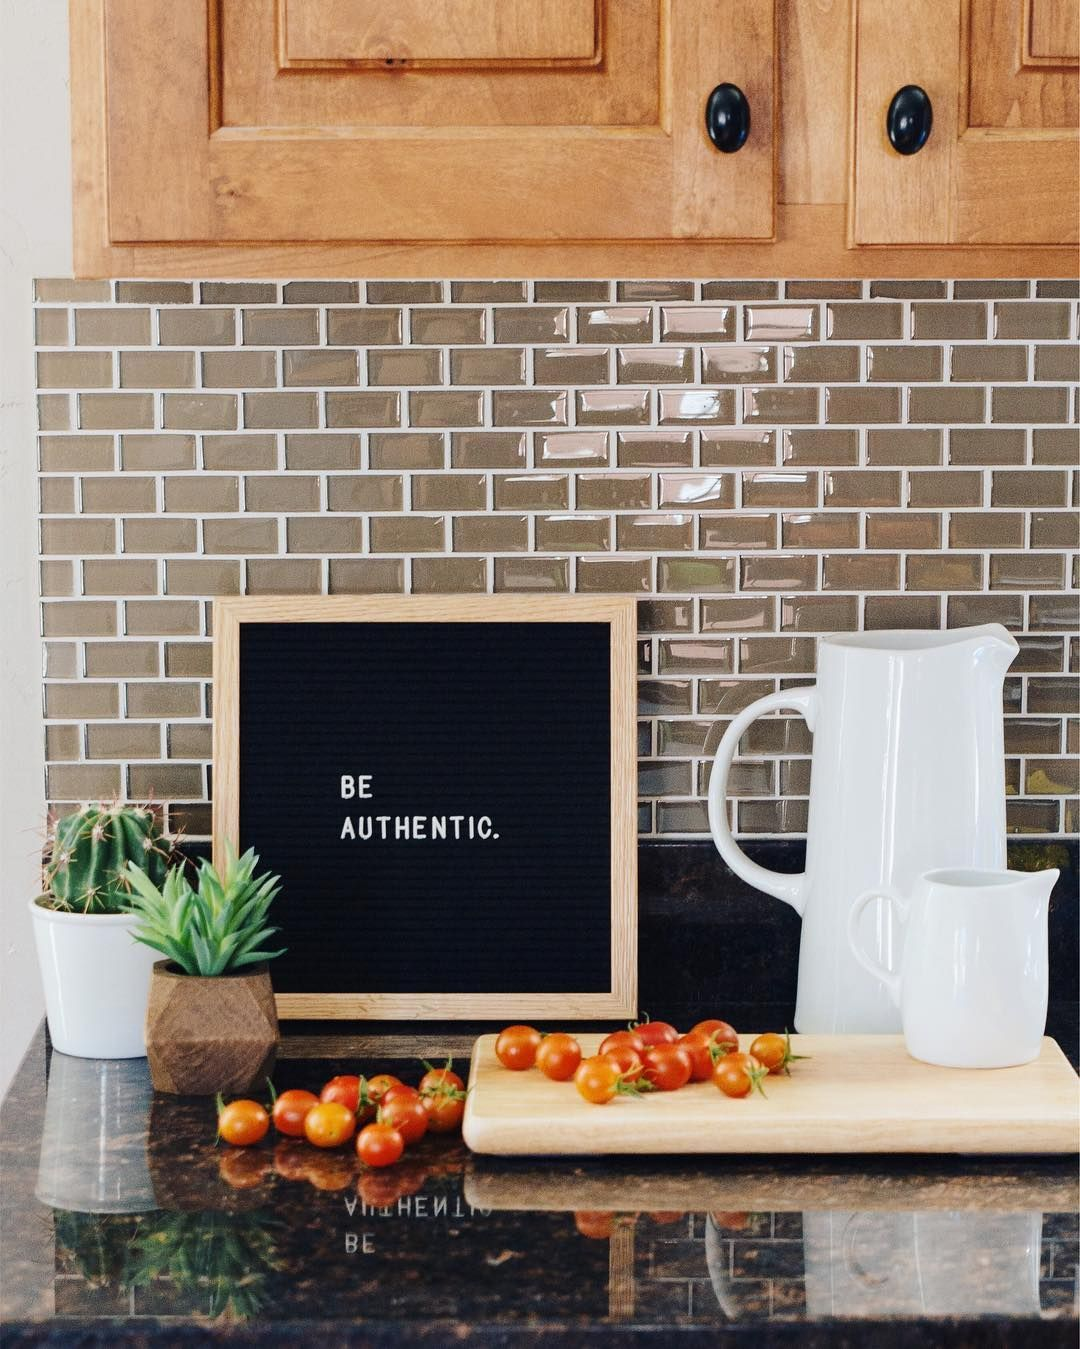 The Most Versatile And Minimalist Decoration For Your Home Felt Letter Board Totally In Love With Thel Message Board Quotes Felt Letter Board Letter Board